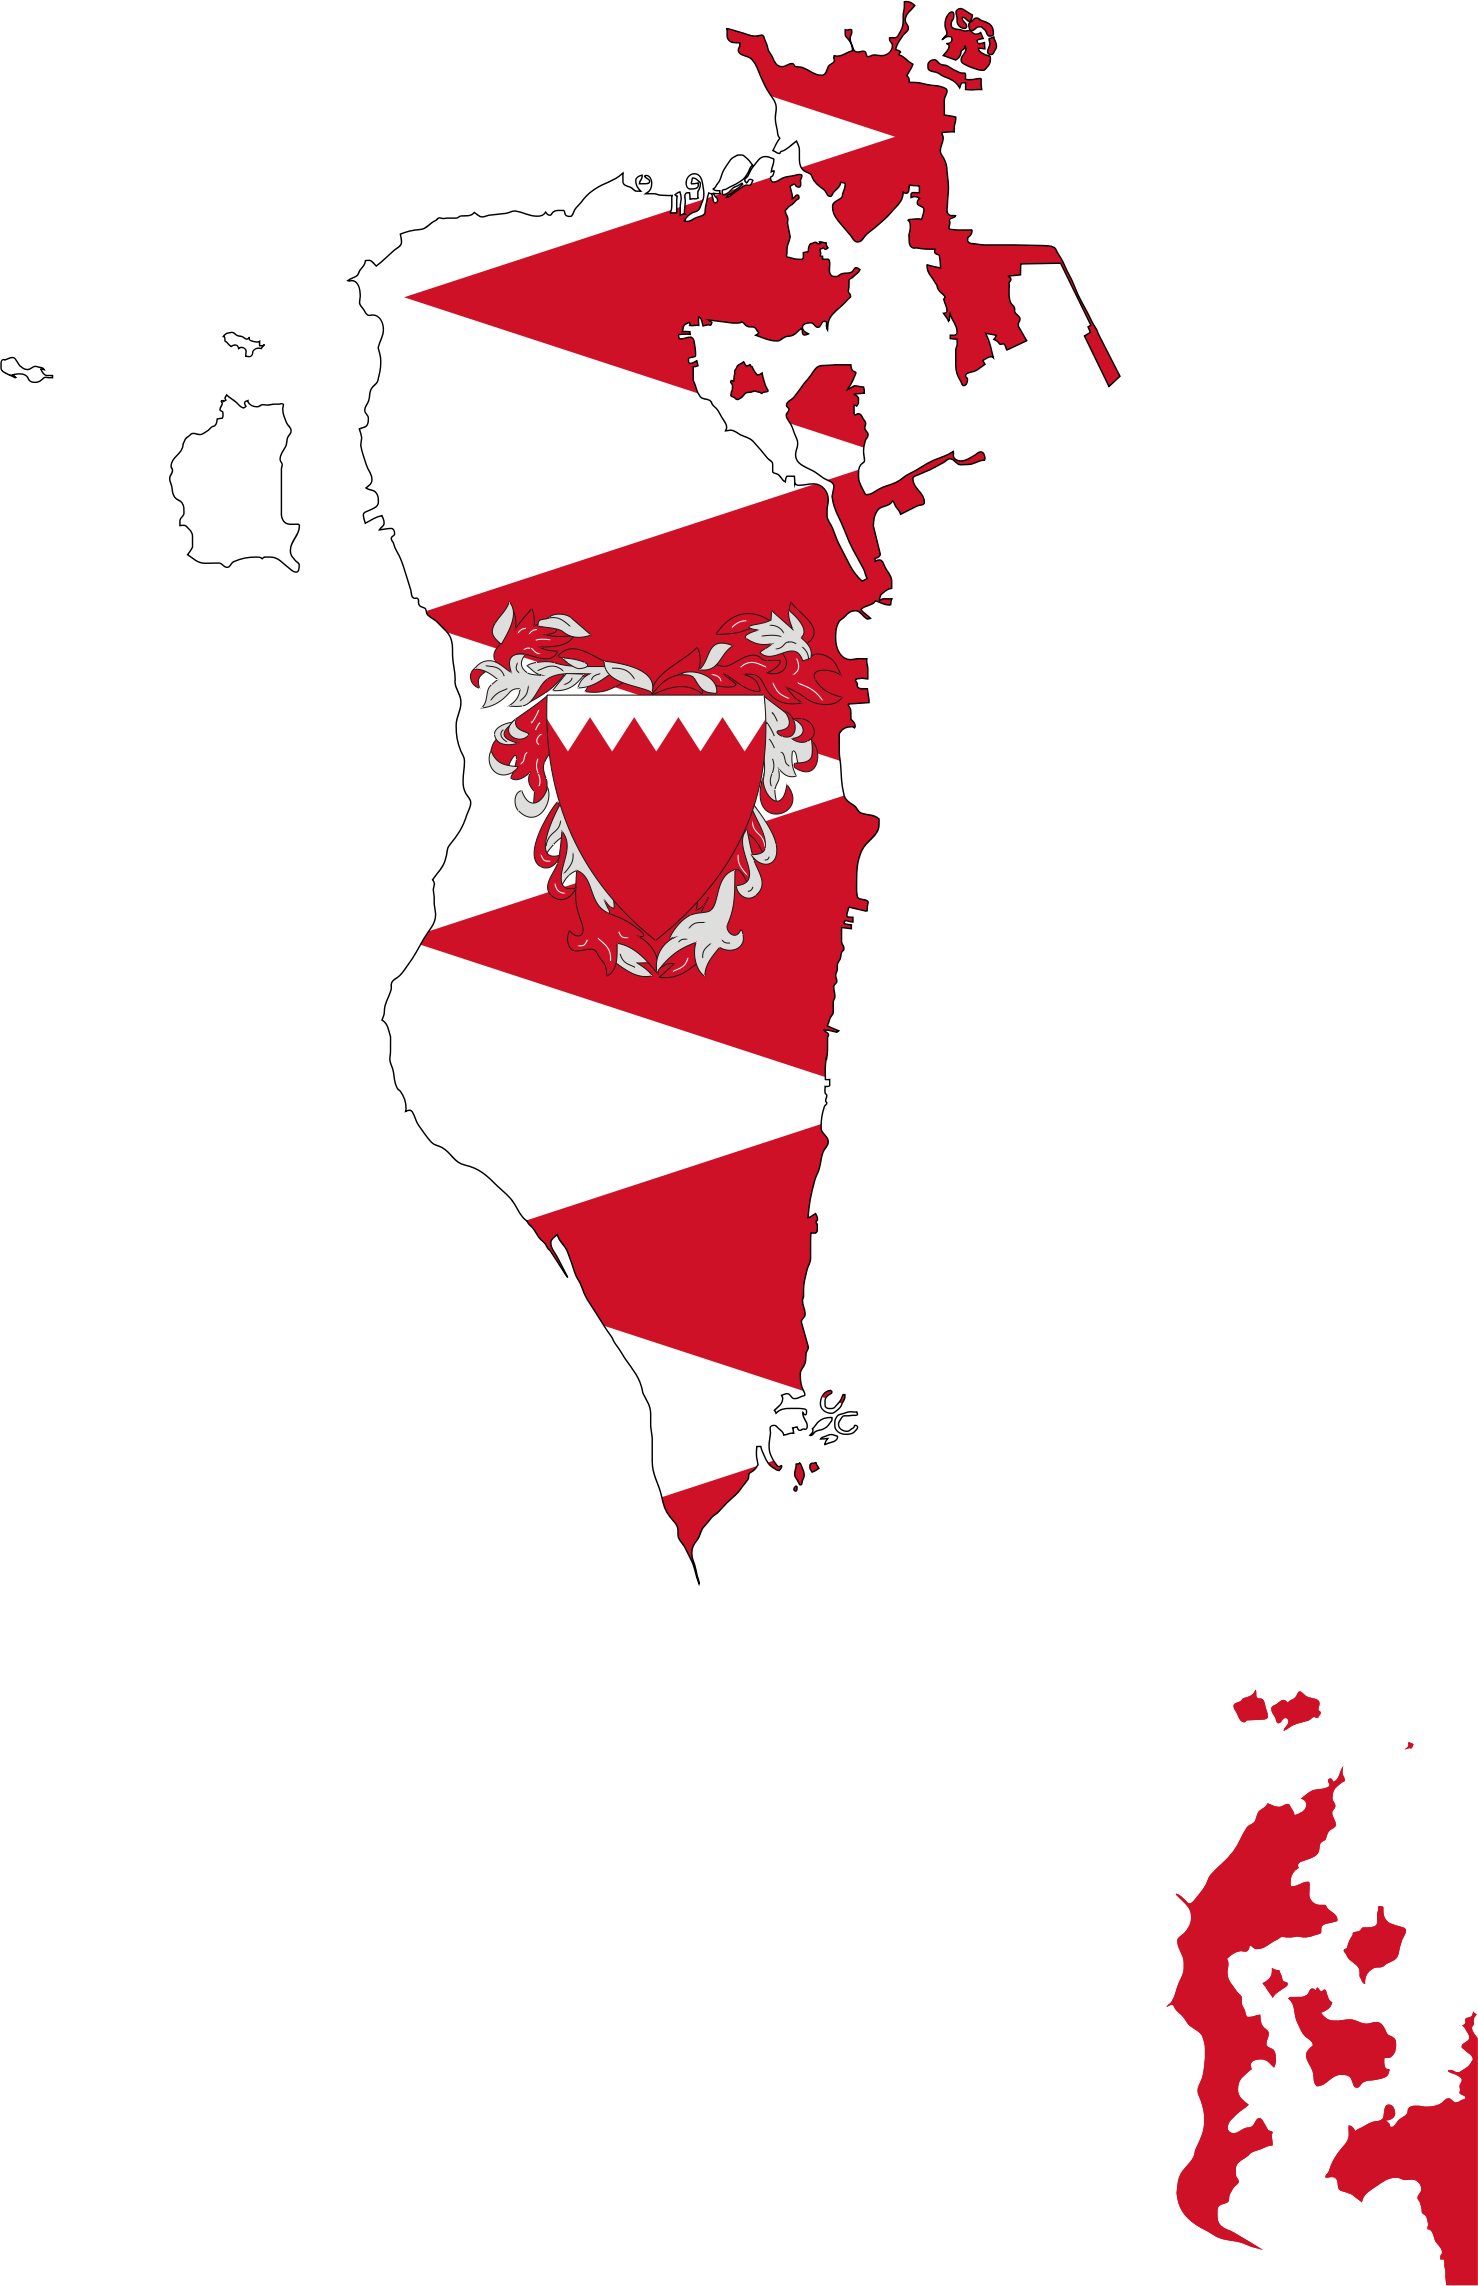 Bahrain Map Flag With Coat Of Arms by GDJ